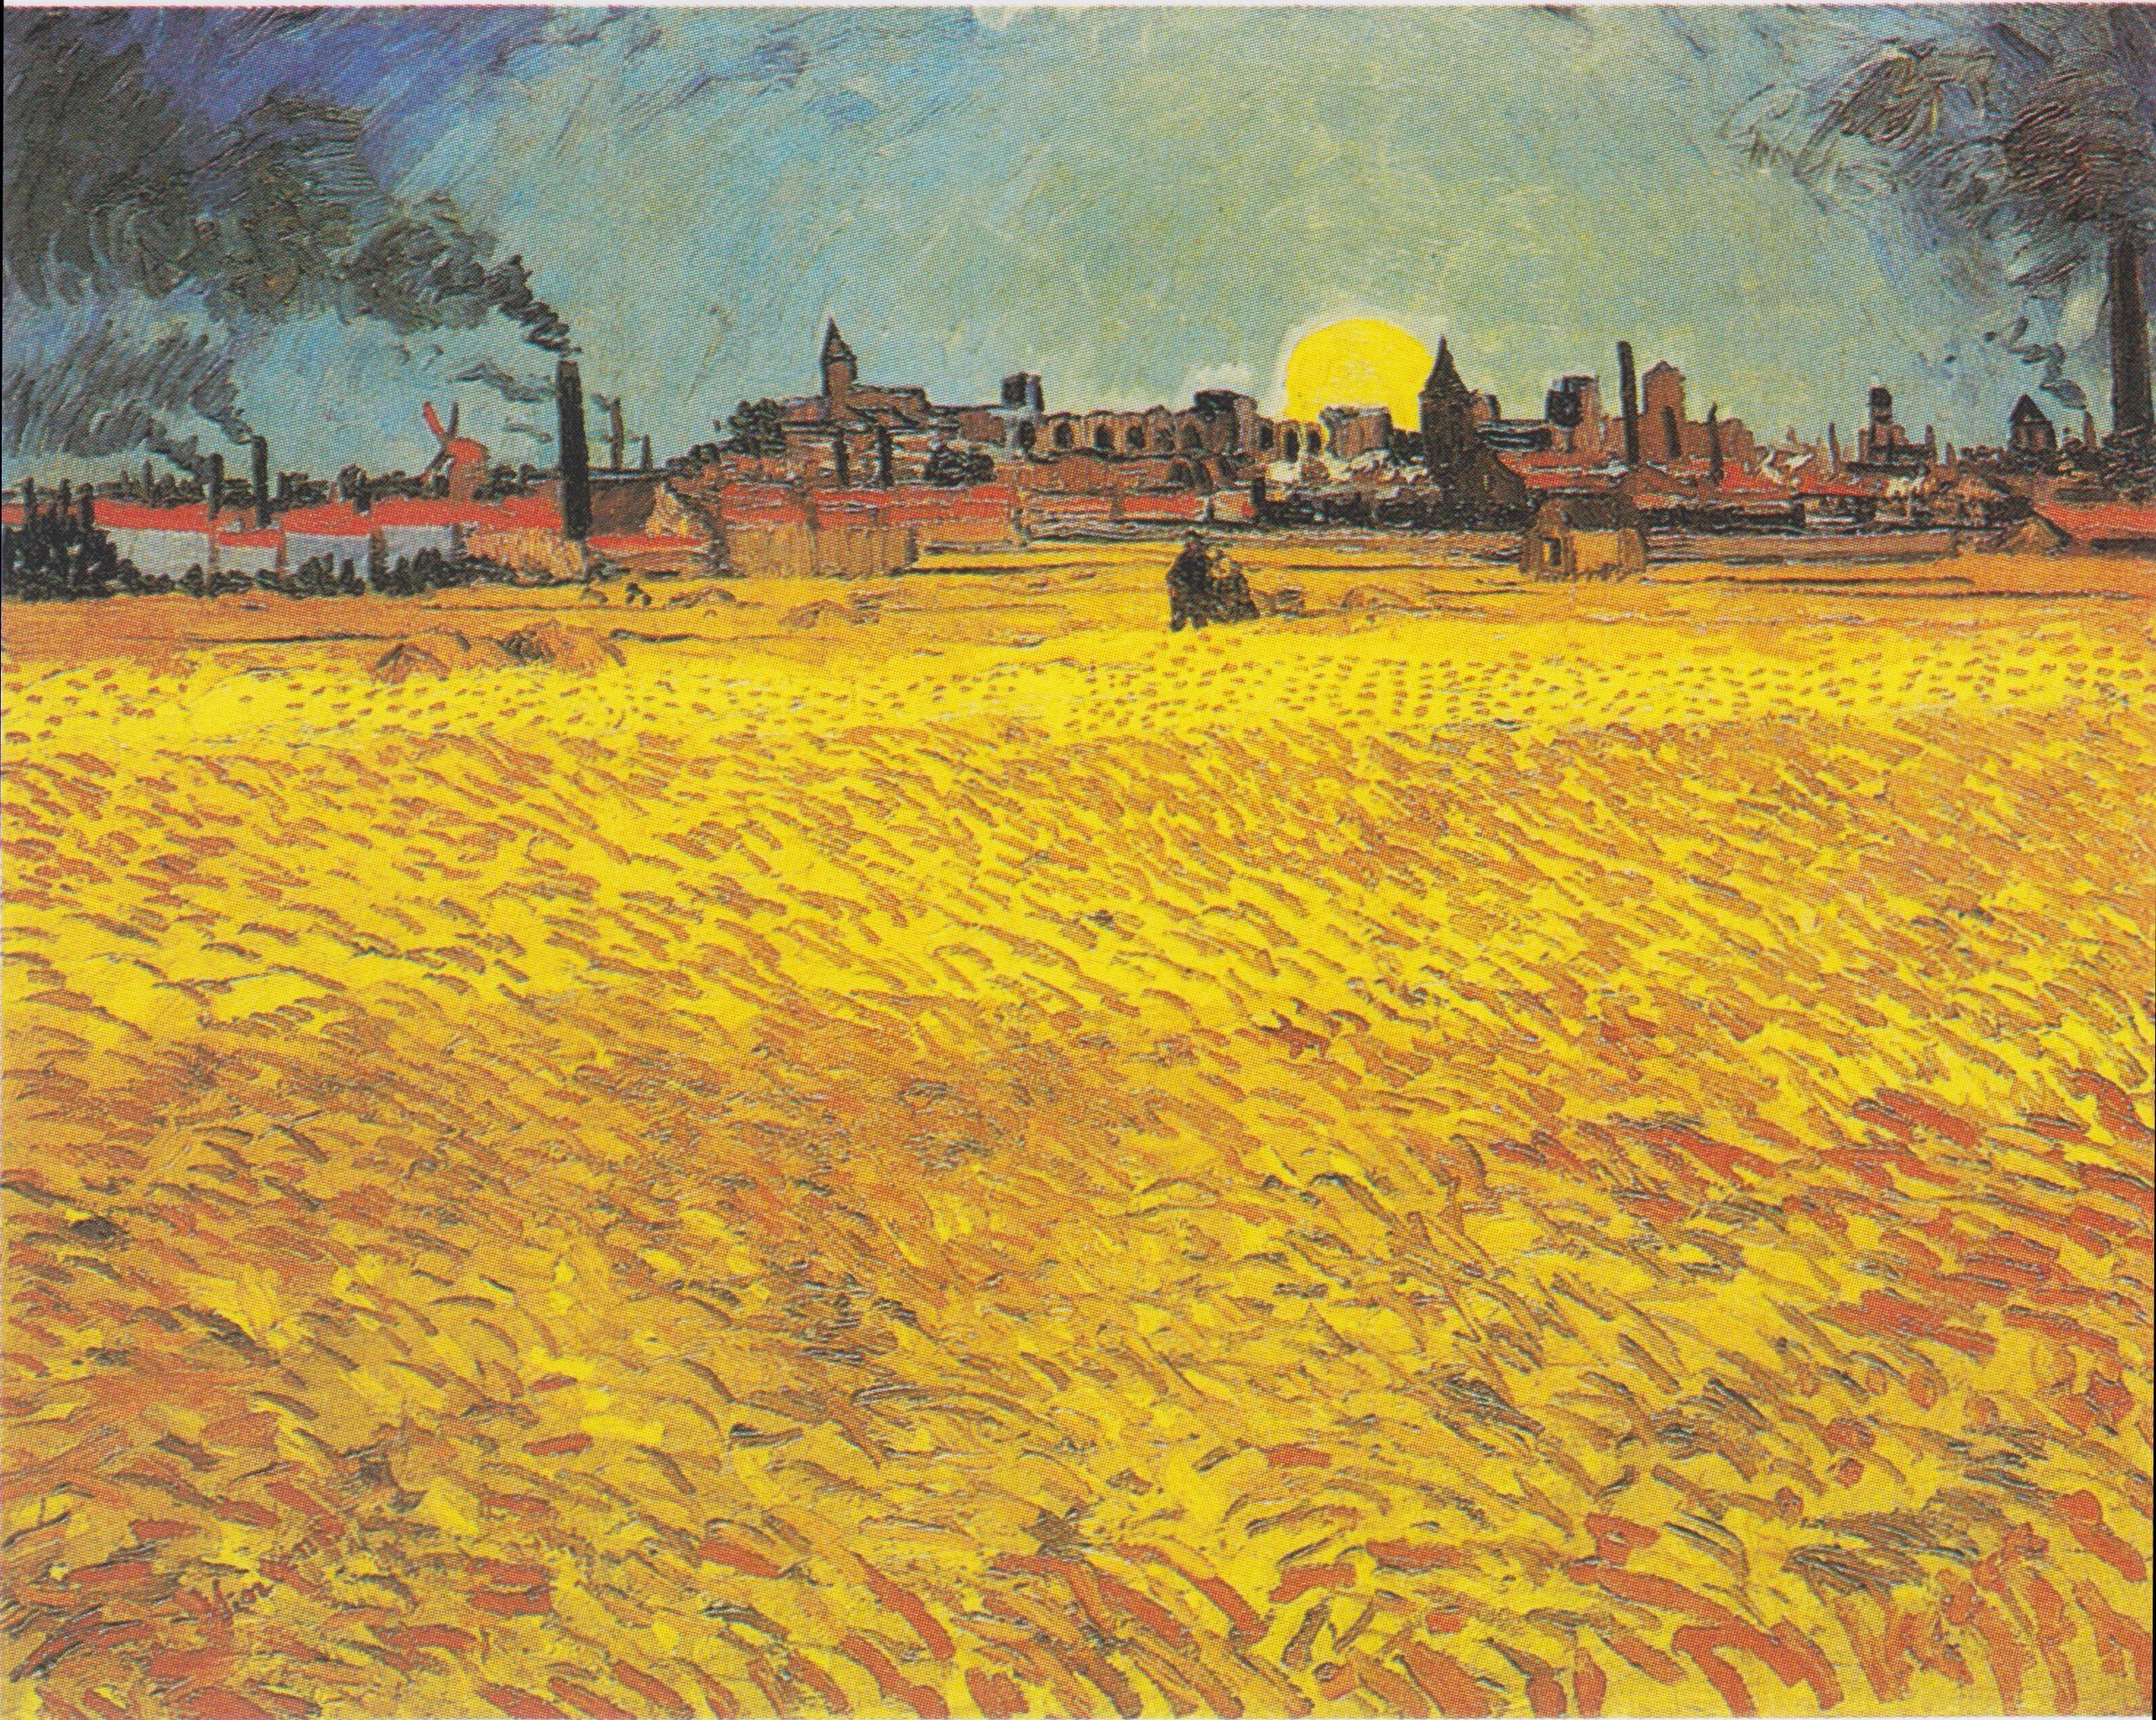 Sunset: Wheat Fields Near Arles, June 1888, Kunstmuseum Intended For 2018 Blended Fabric Van Gogh Starry Night Over The Rhone Wall Hangings (View 13 of 20)